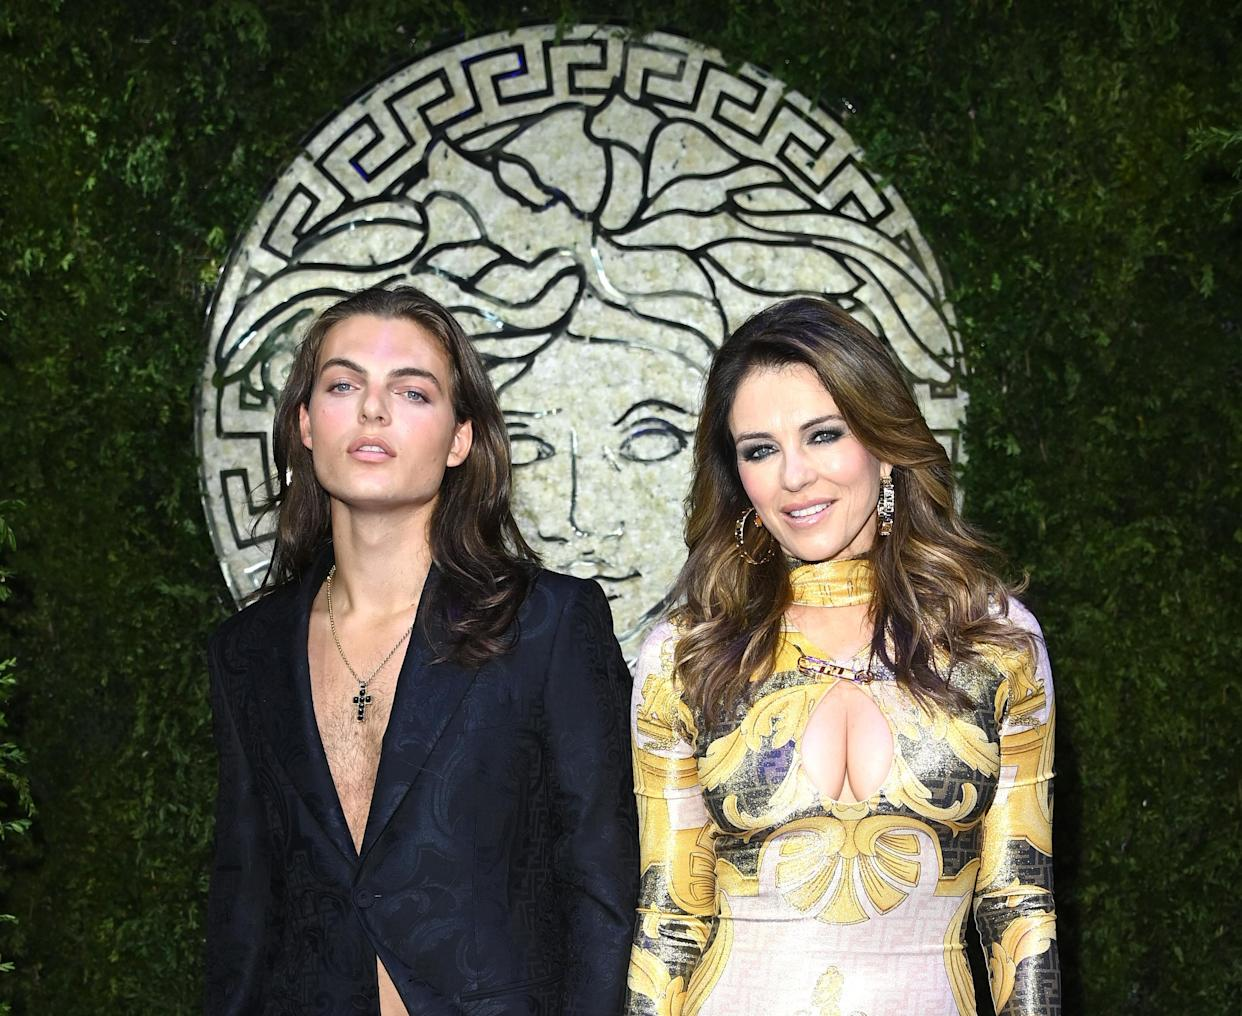 MILAN, ITALY - SEPTEMBER 26: Damian Charles Hurley and Elizabeth Hurley are seen on the front row of the Versace special event during the Milan Fashion Week - Spring / Summer 2022 on September 26, 2021 in Milan, Italy. (Photo by Daniele Venturelli/Daniele Venturelli / Getty Images )